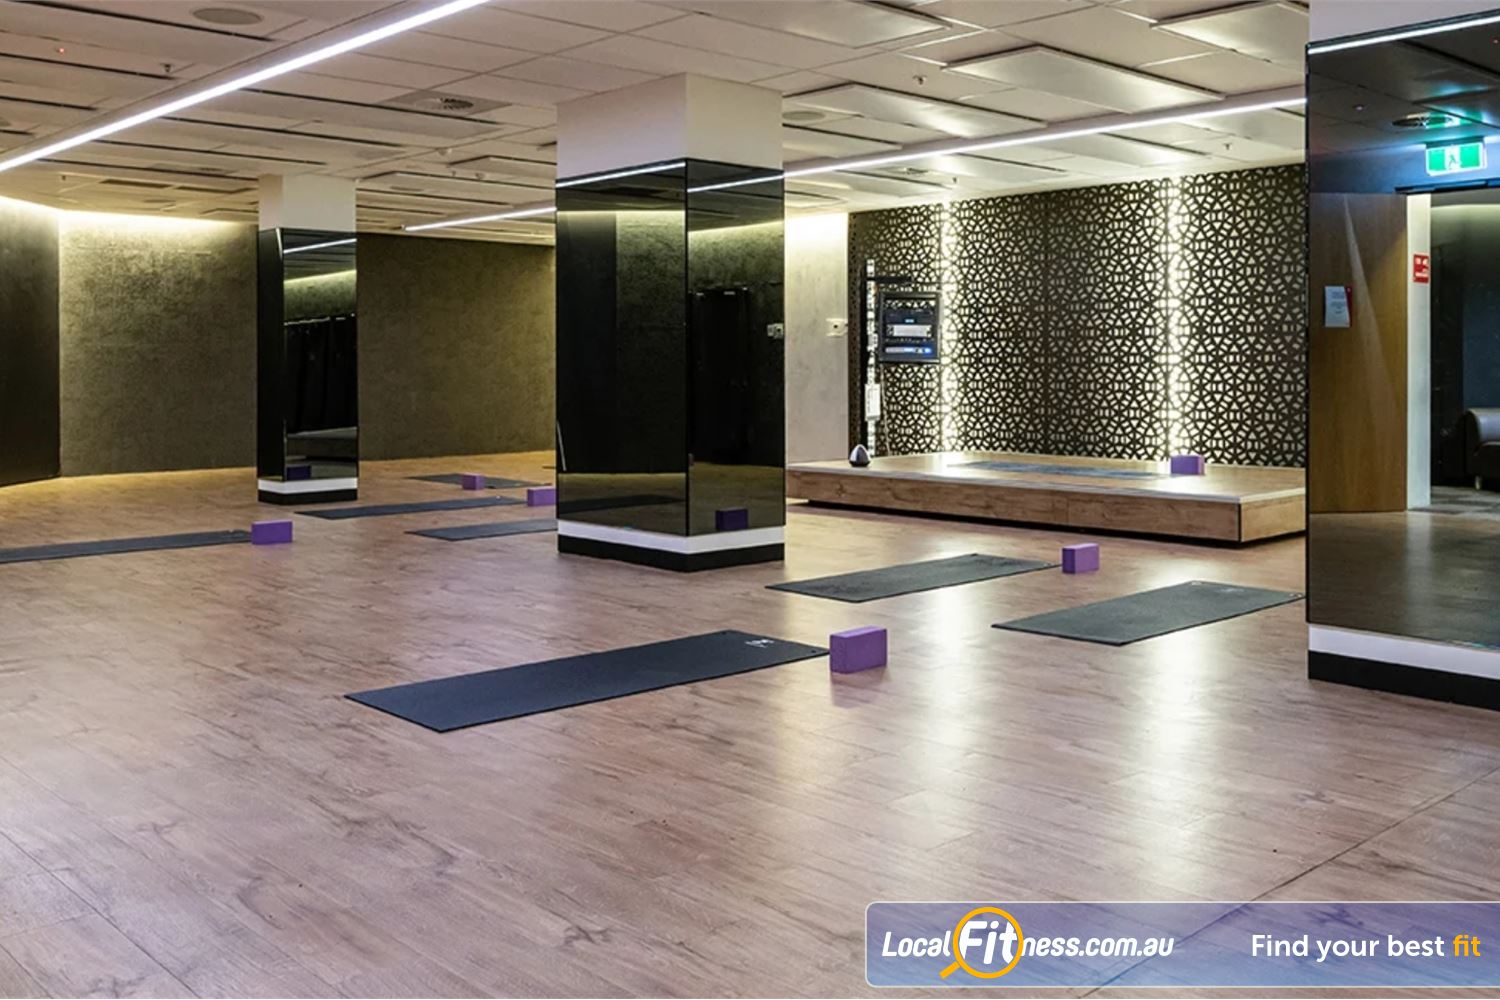 Fitness First Platinum George St. Sydney Our dedicated Sydney Hot Yoga studio set to about 35 degrees for our Hot Yoga classes.